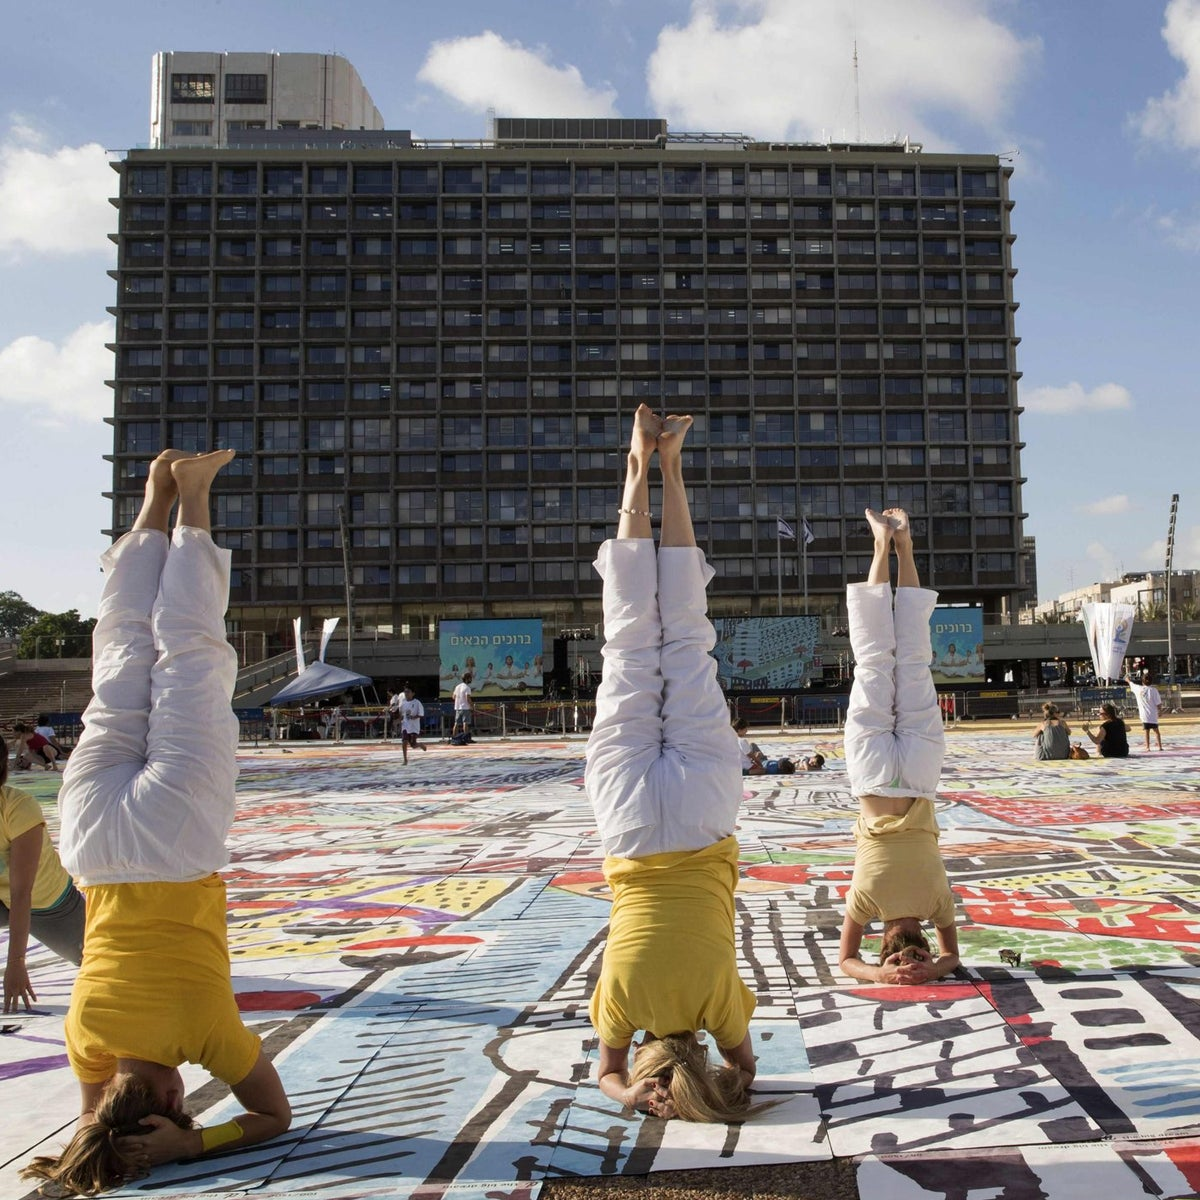 People practise yoga on the occasion of the International Yoga Day in Tel Aviv on June 21, 2017.